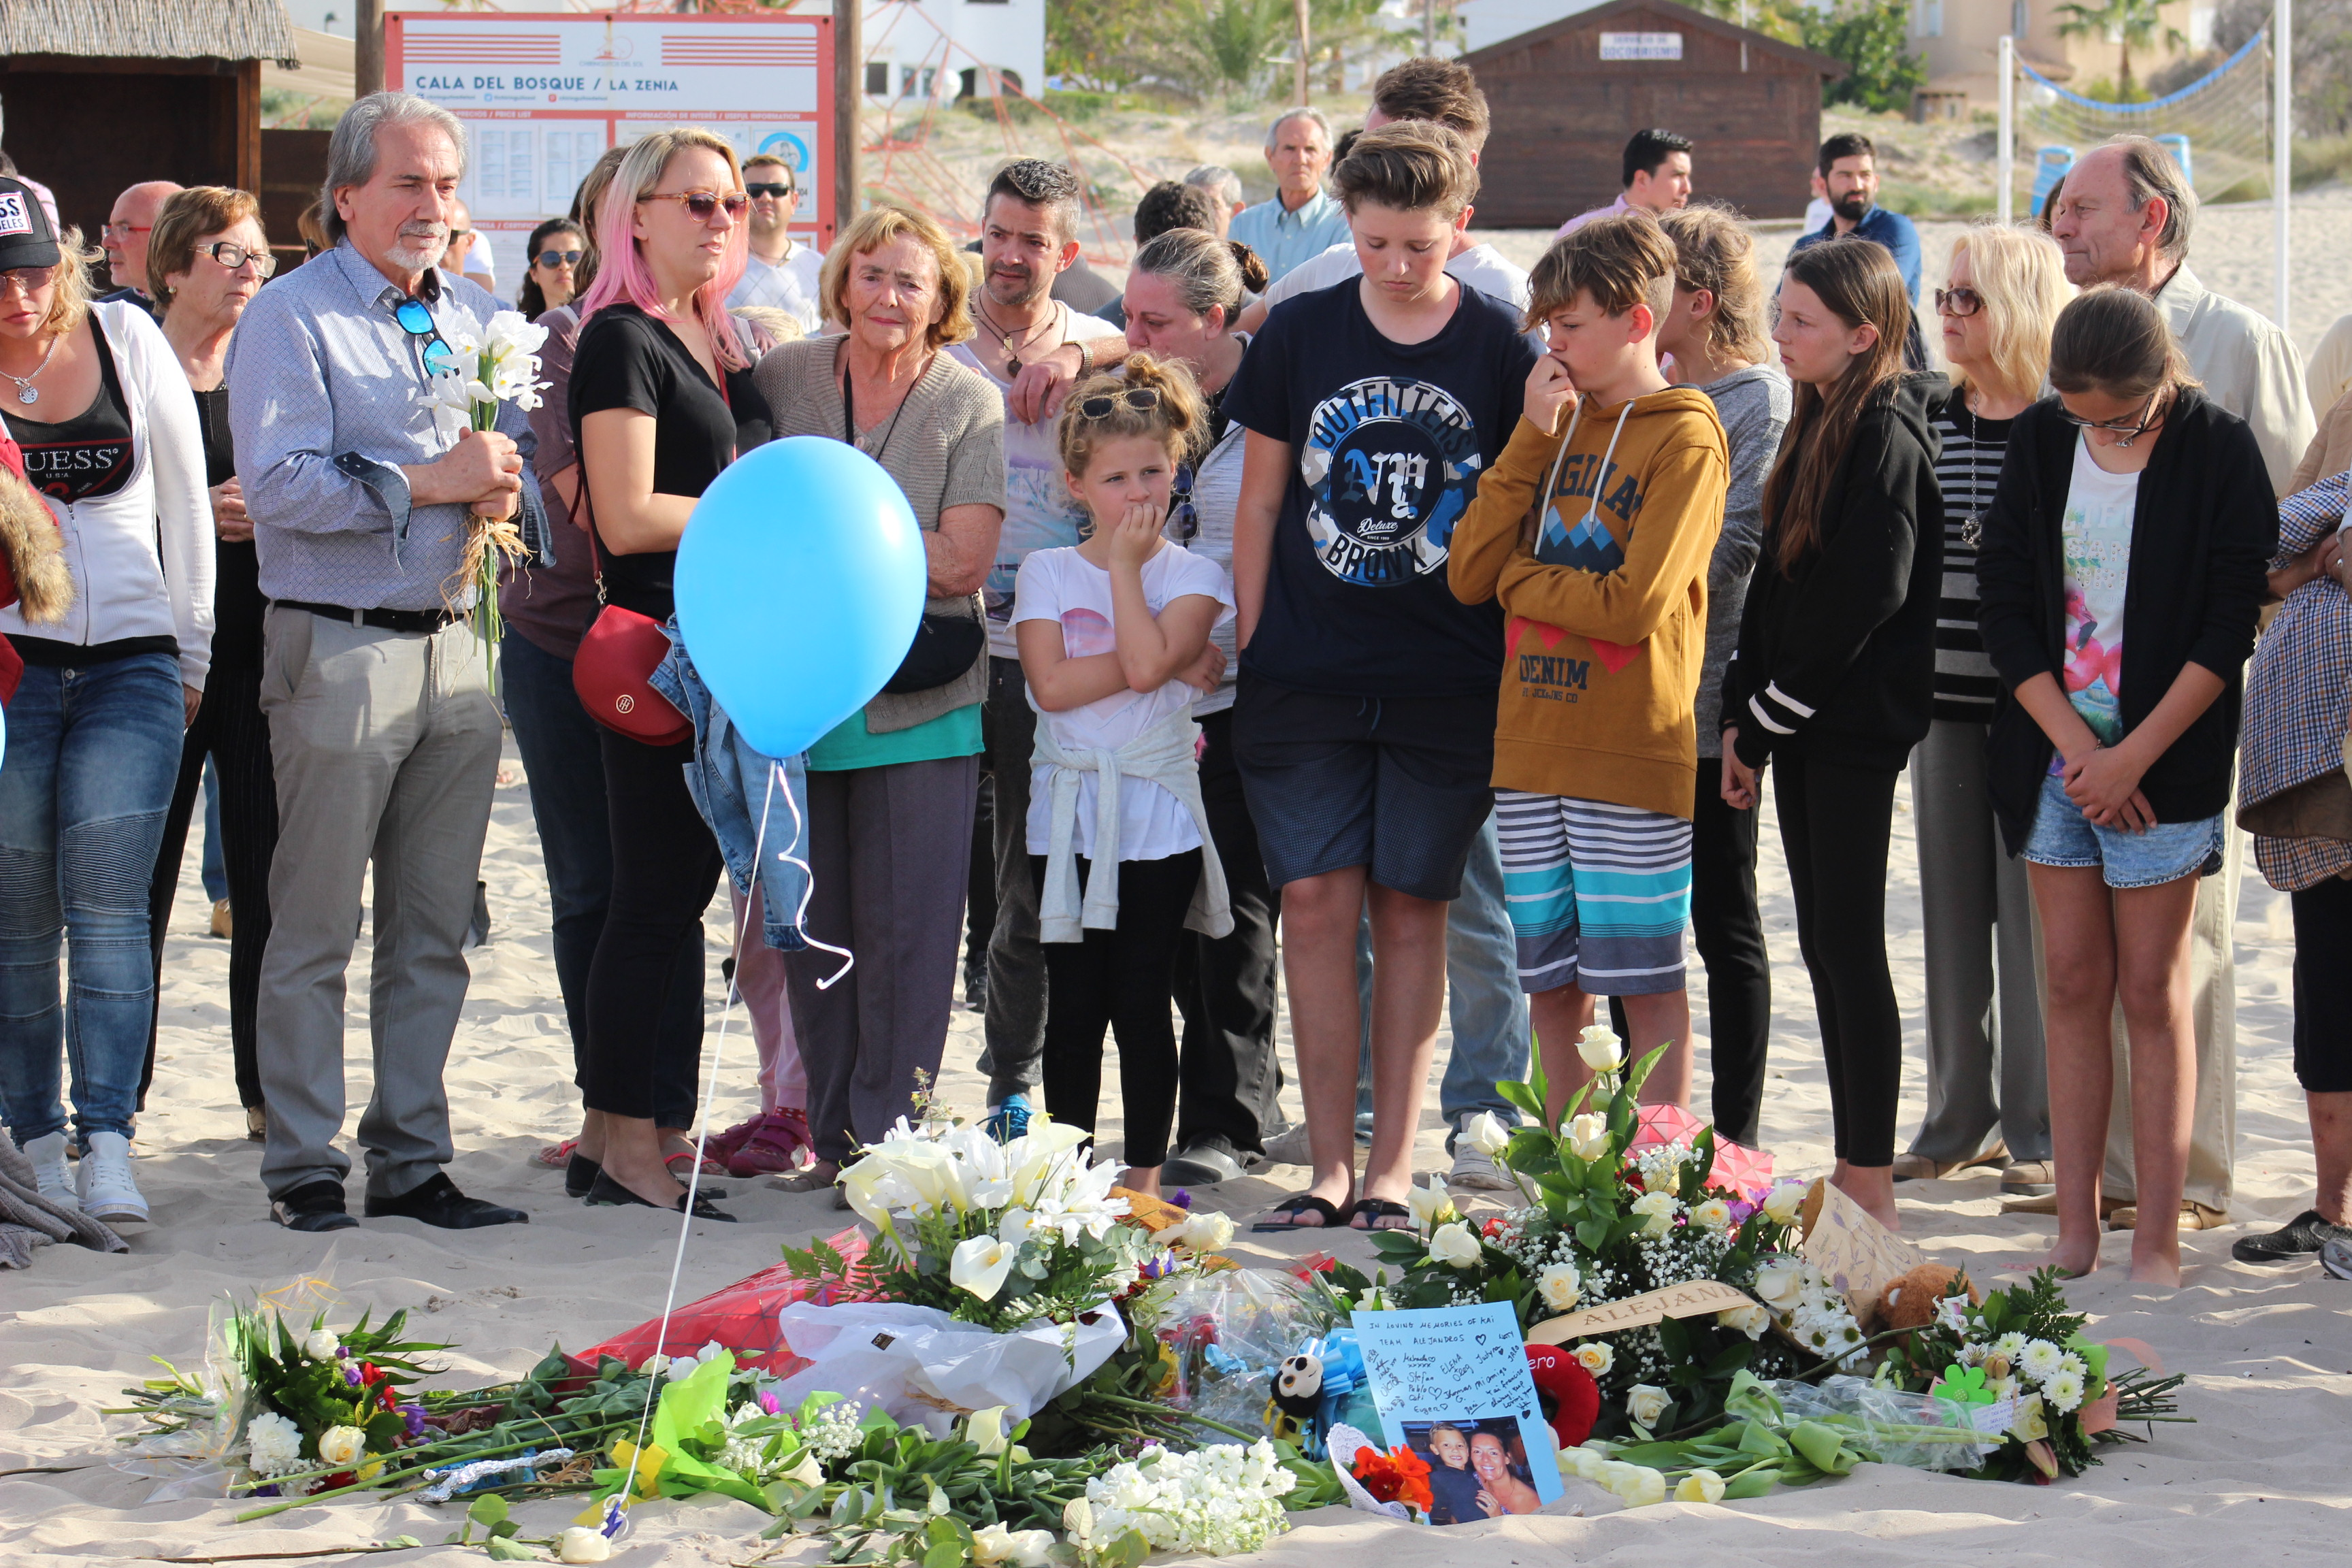 Tributes paid to 9 year old Kai on La Zenia Beach